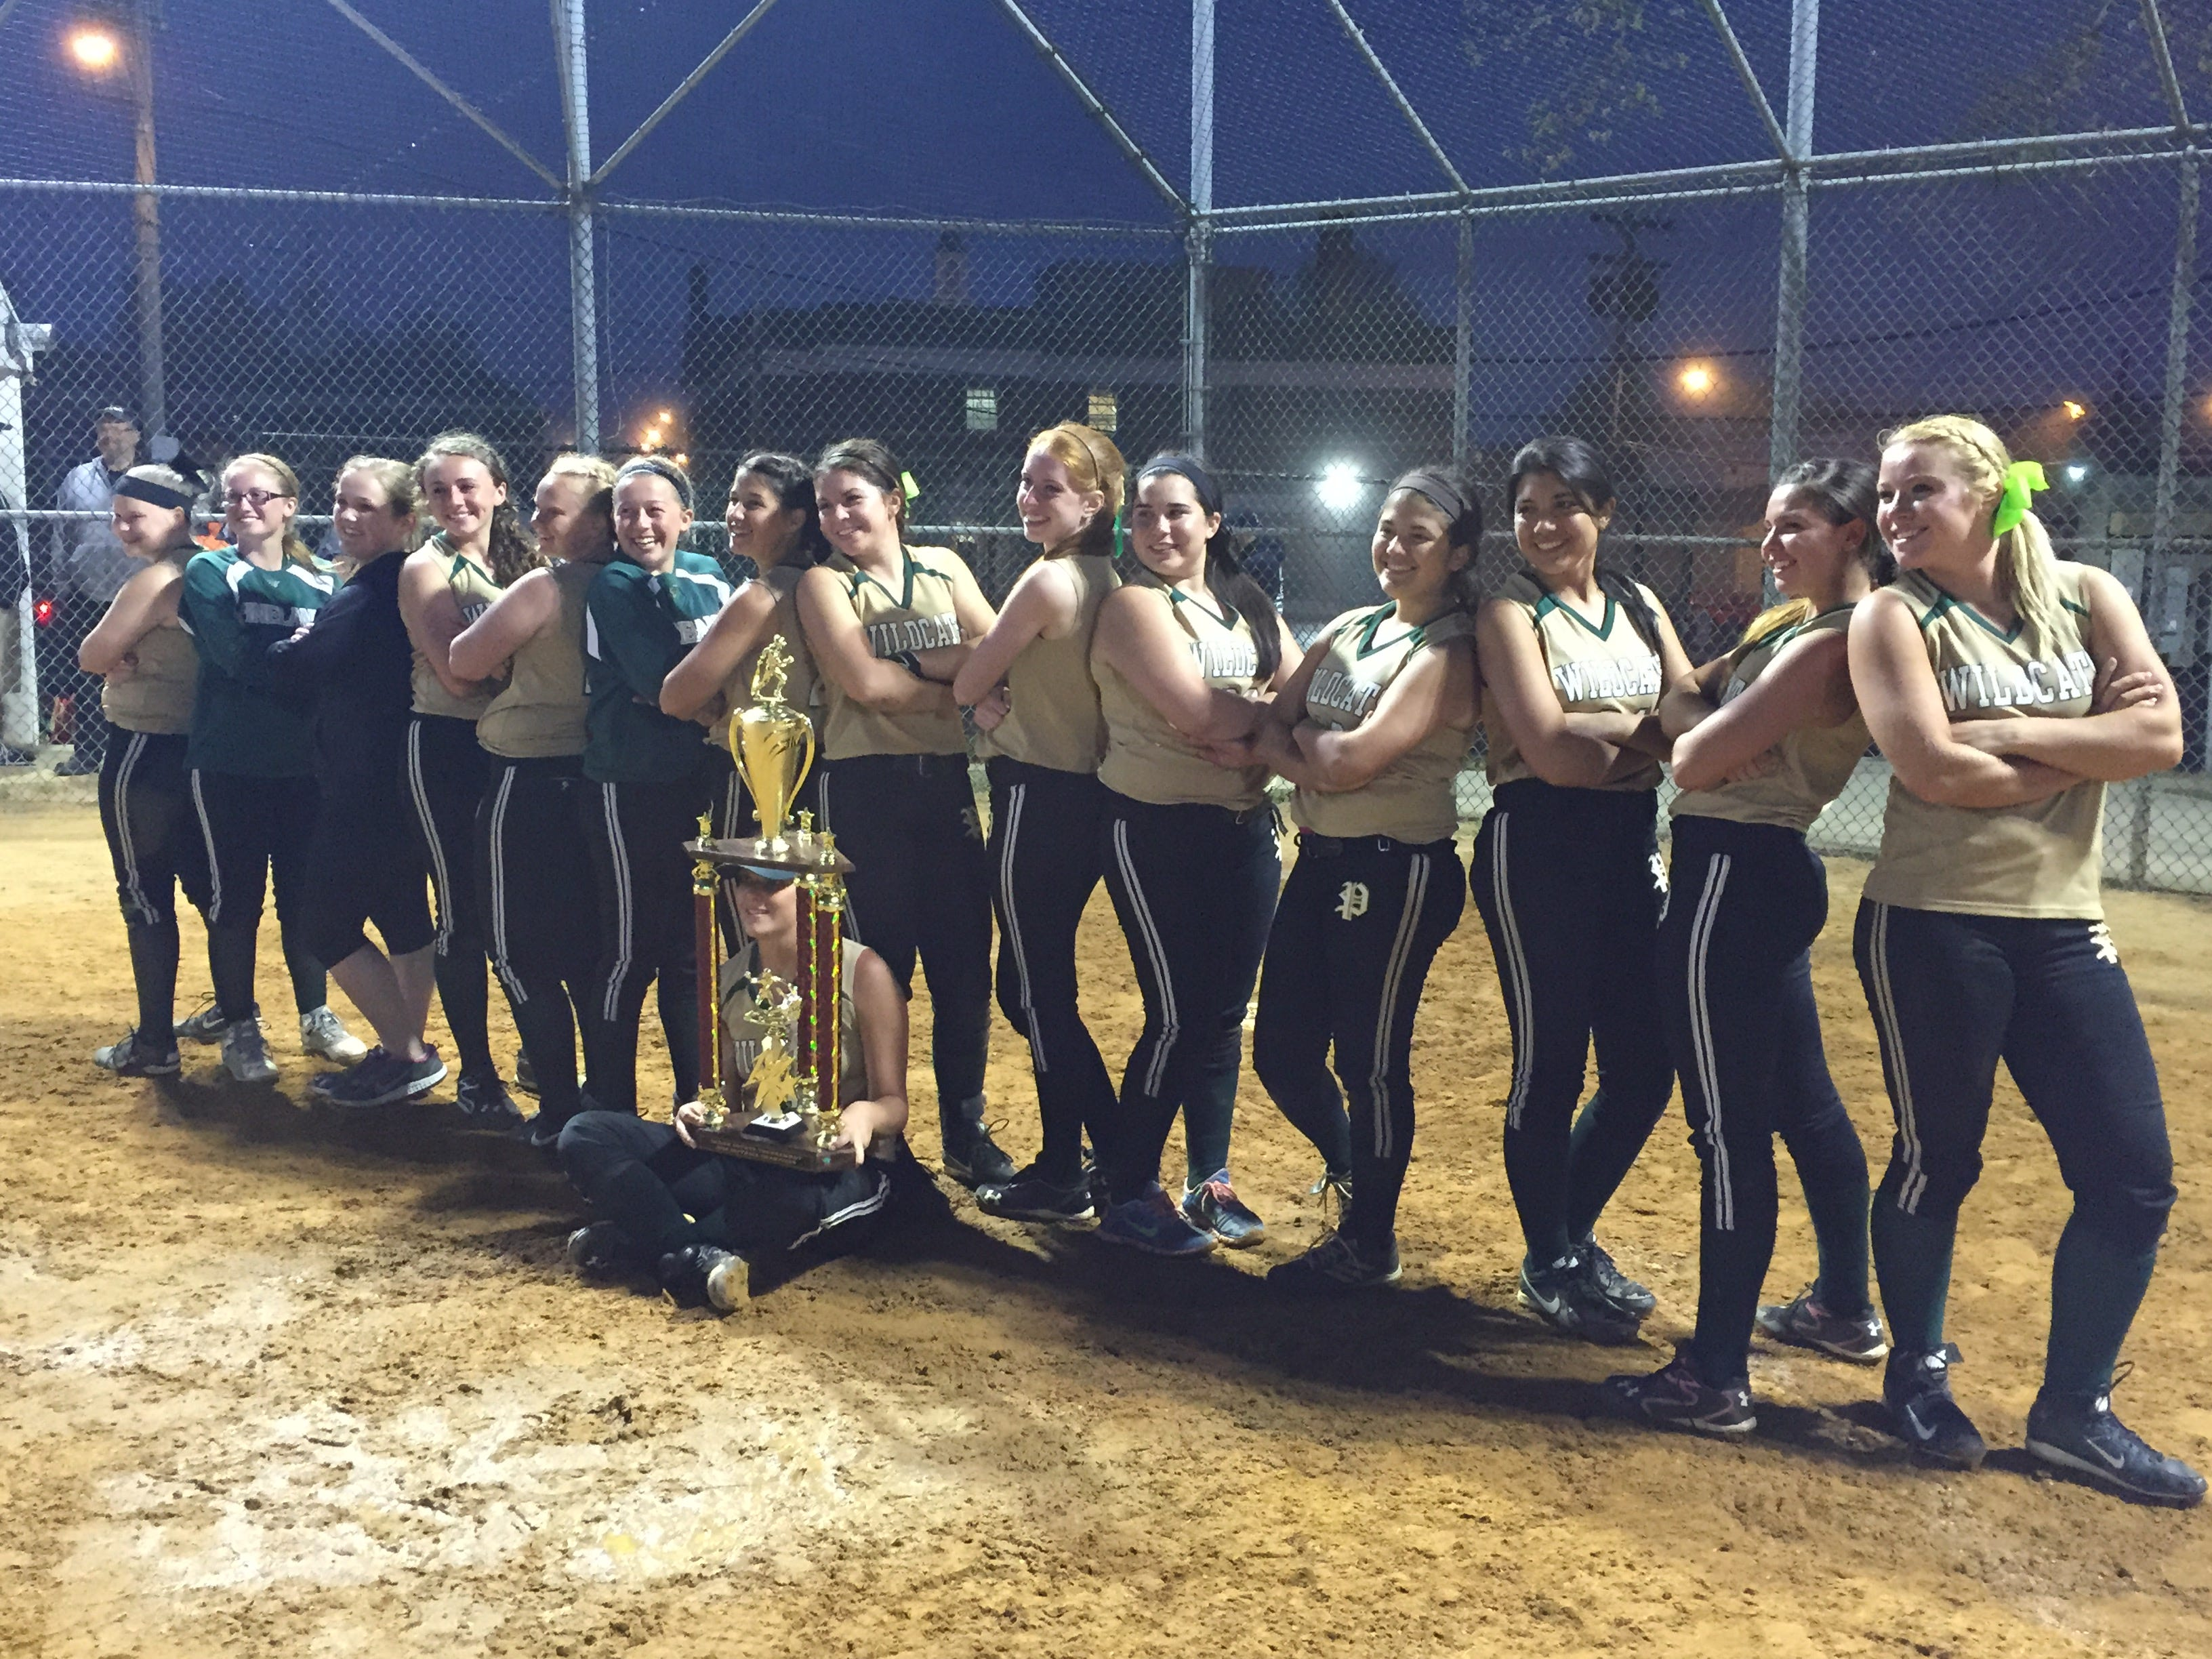 The Pinelands softball team displays the championship trophy after defeating Southern, 10-0, in the Ocean County Tournament final on Saturday night, May 9, 2015